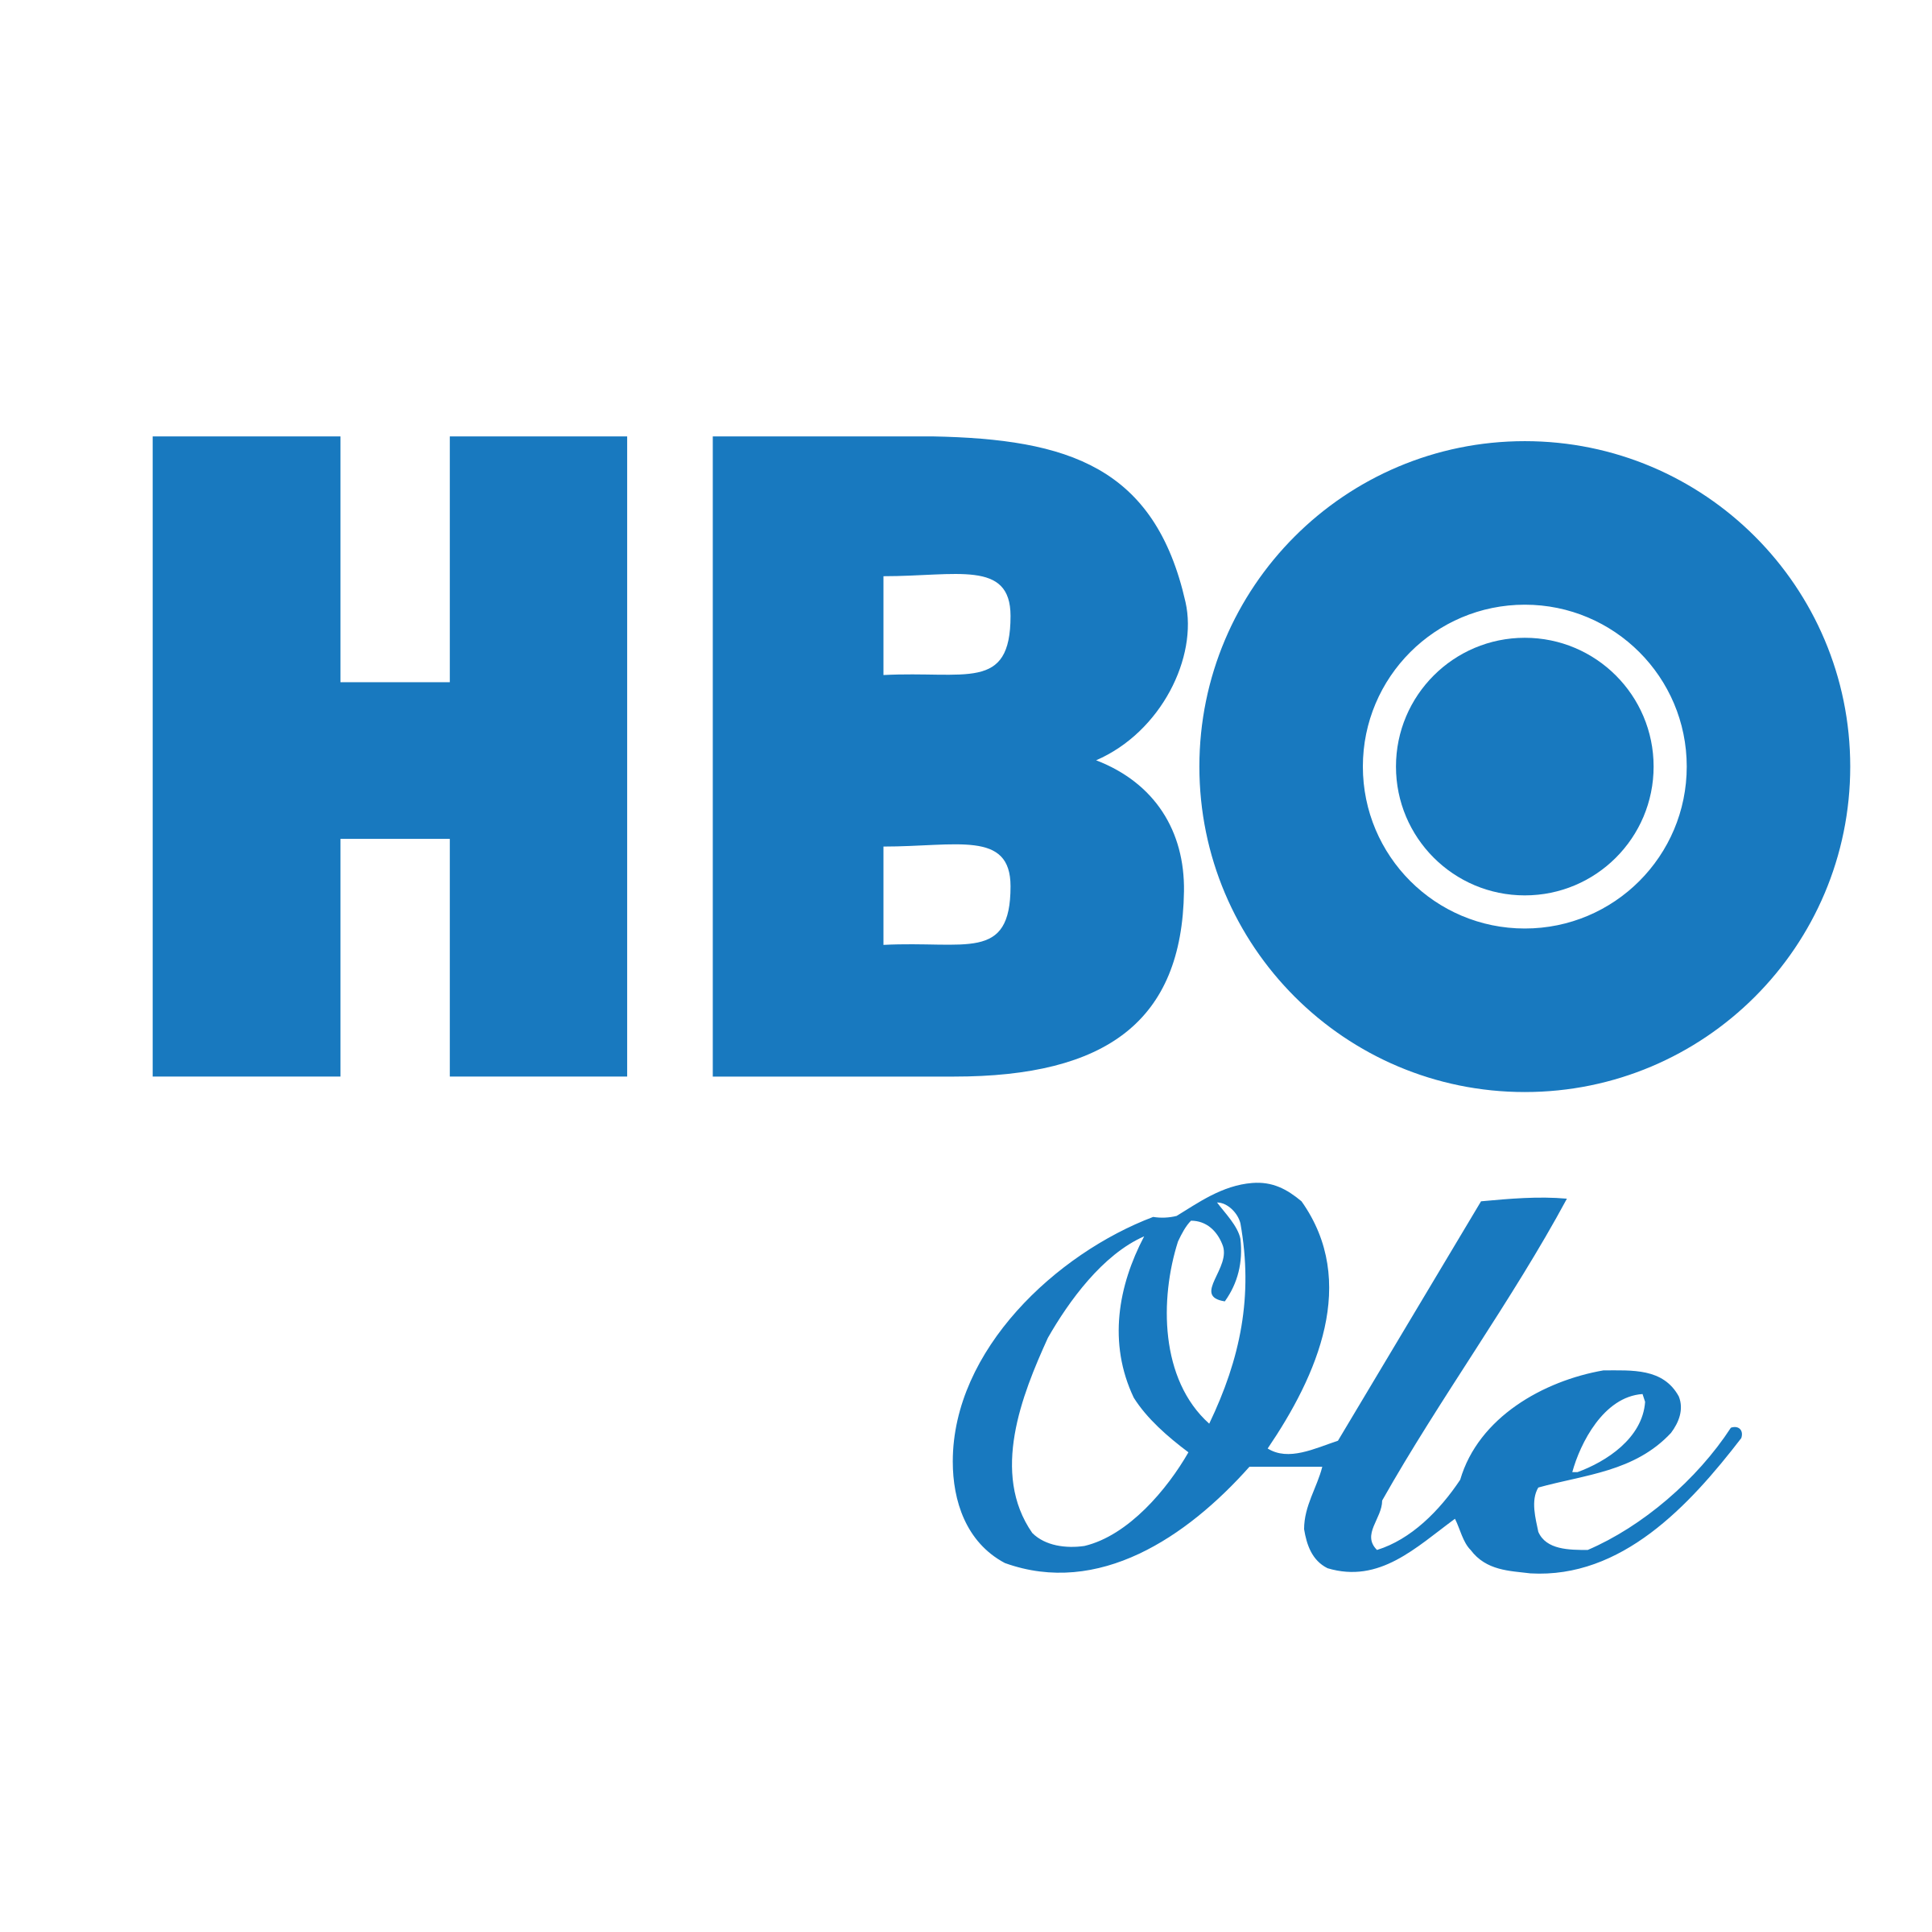 HBO Ole Logo PNG Transparent & SVG Vector - Freebie Supply